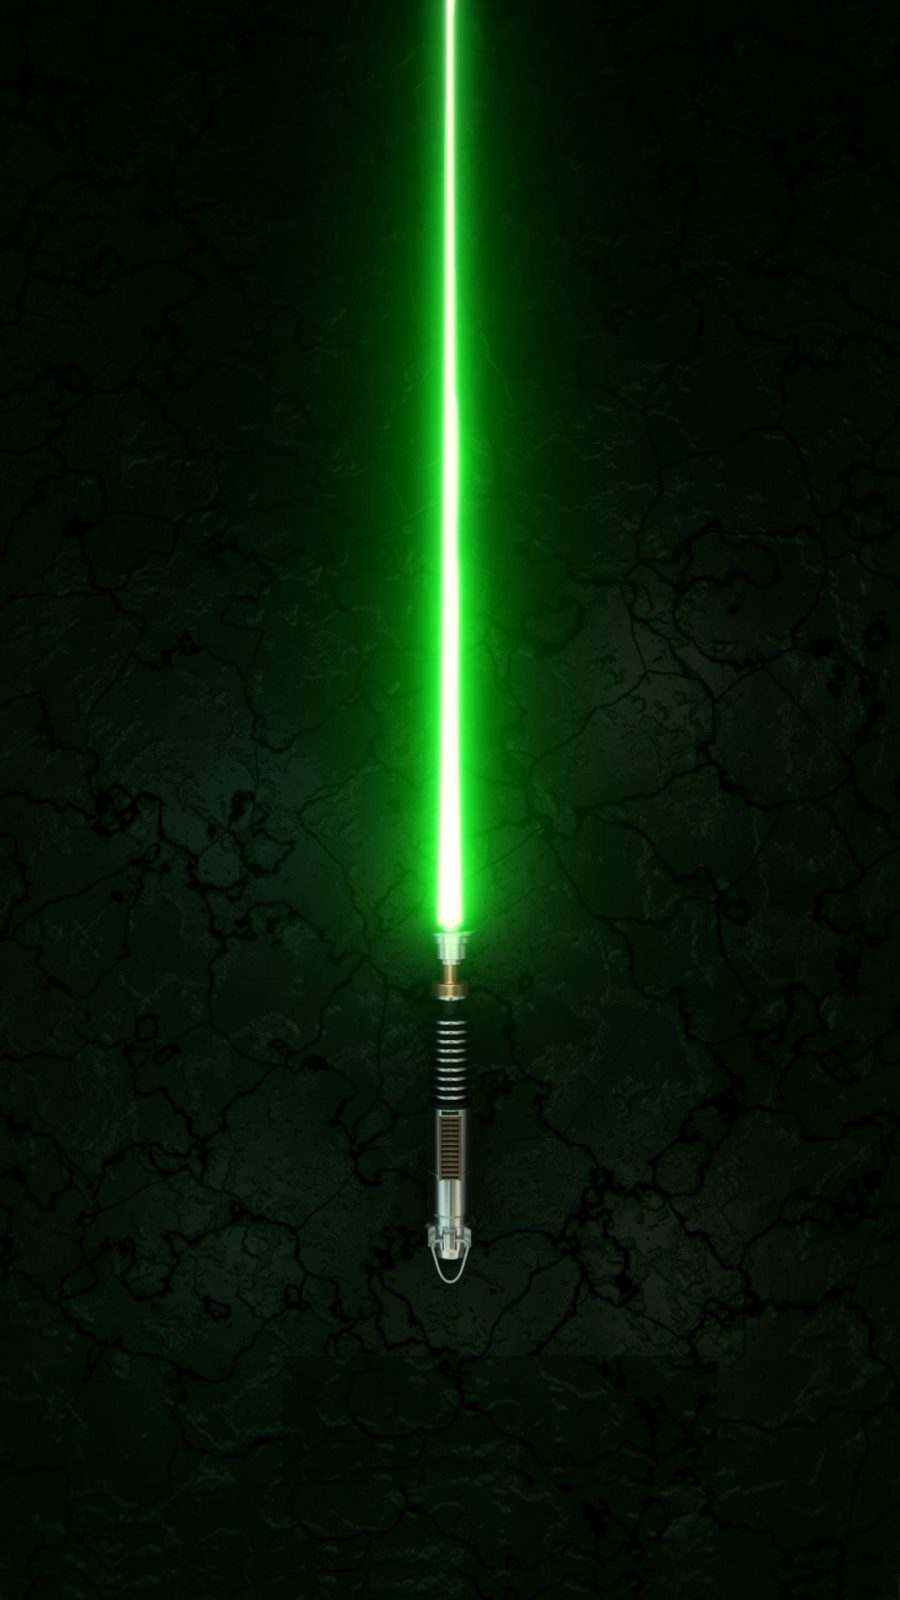 We need a Lightsaber as a harvesting tool!